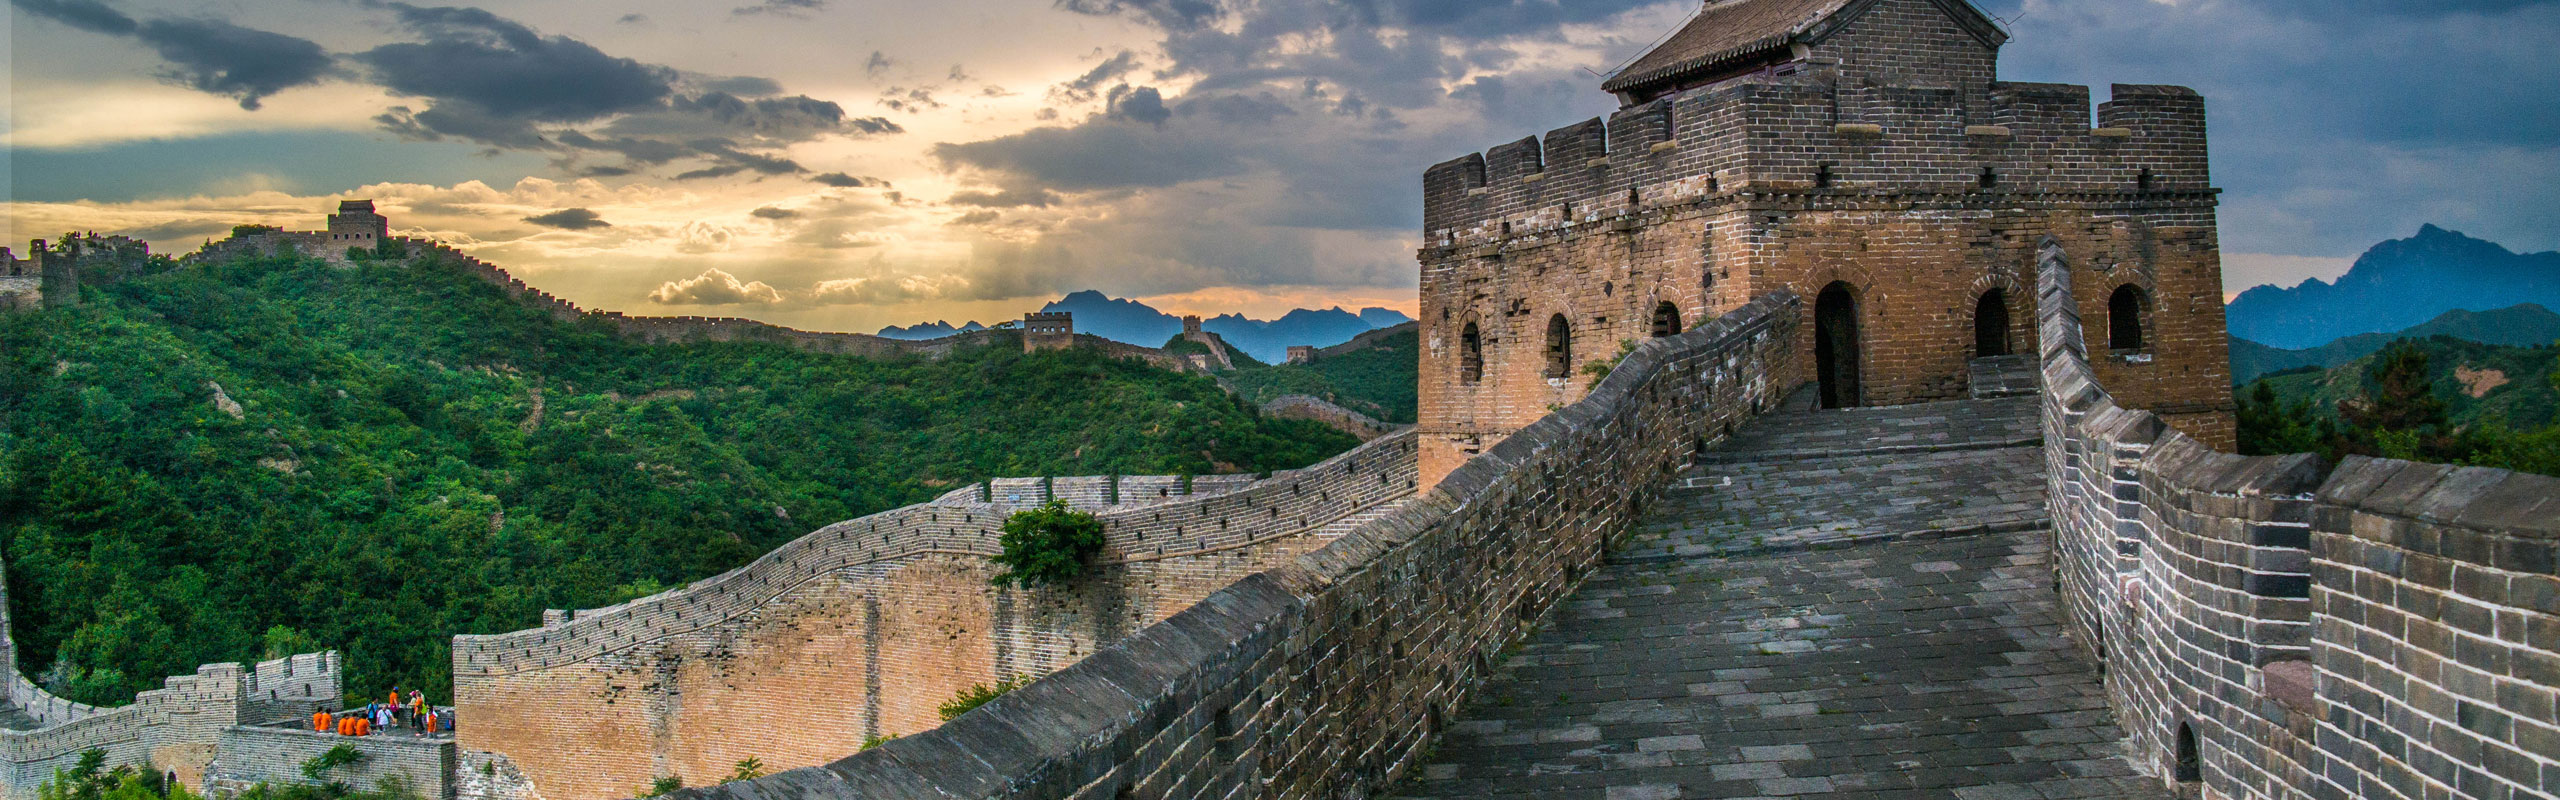 7-Day Encompassed Hiking on the Great Wall